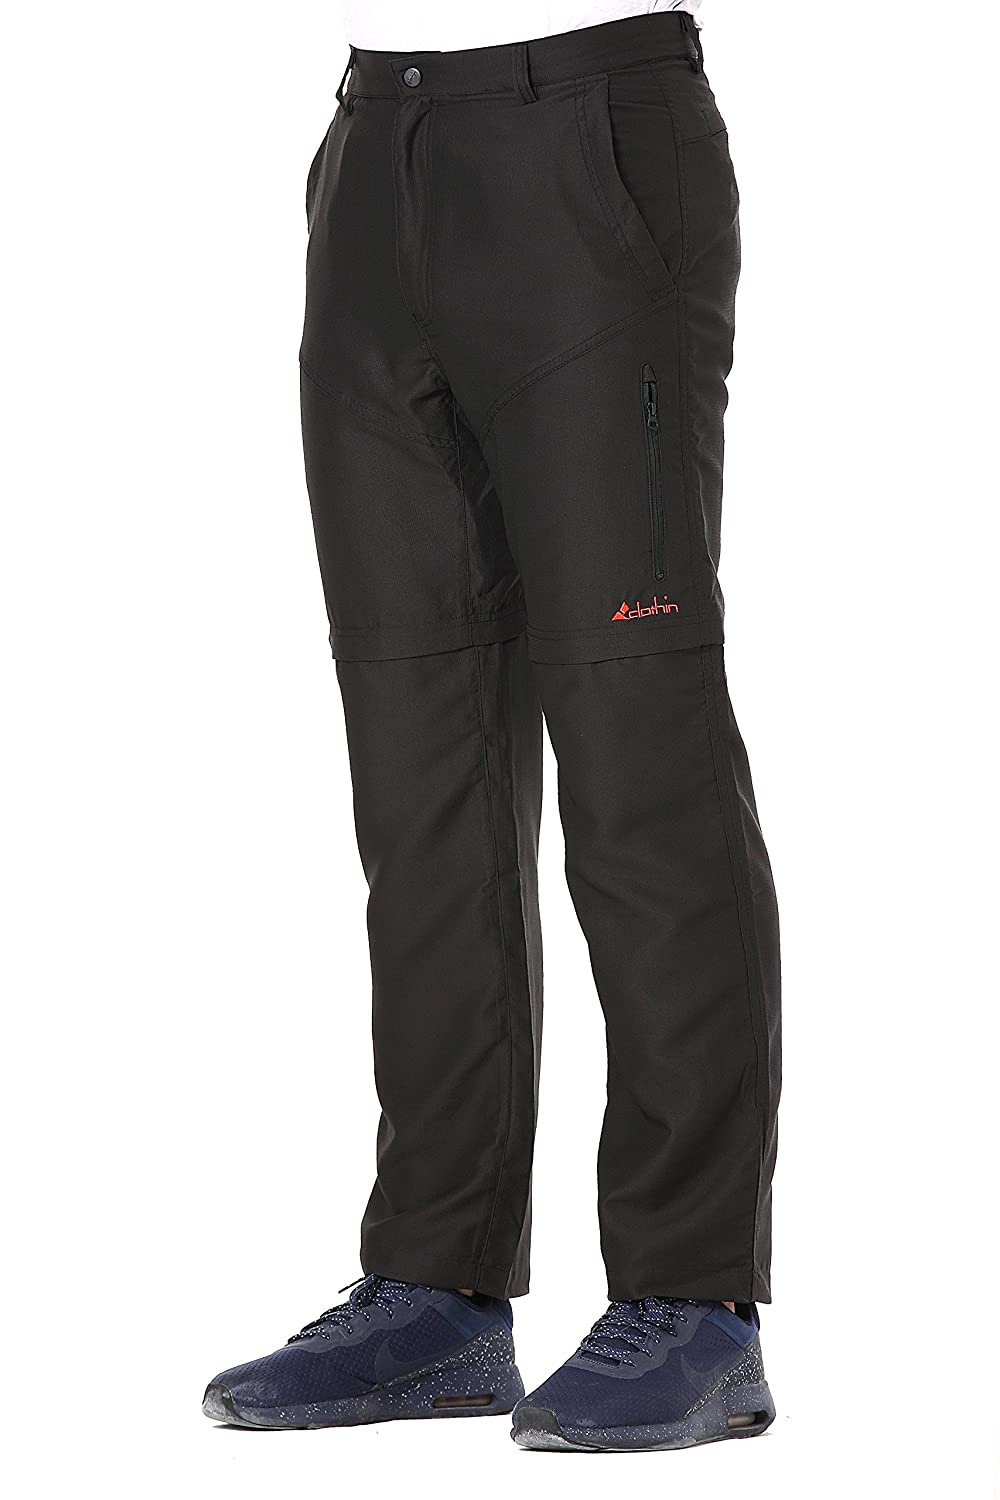 Men's Zip Off Pants Convertible to Shorts Lightweight Quick-Dry  Water-Repellent at Amazon Men's Clothing store: